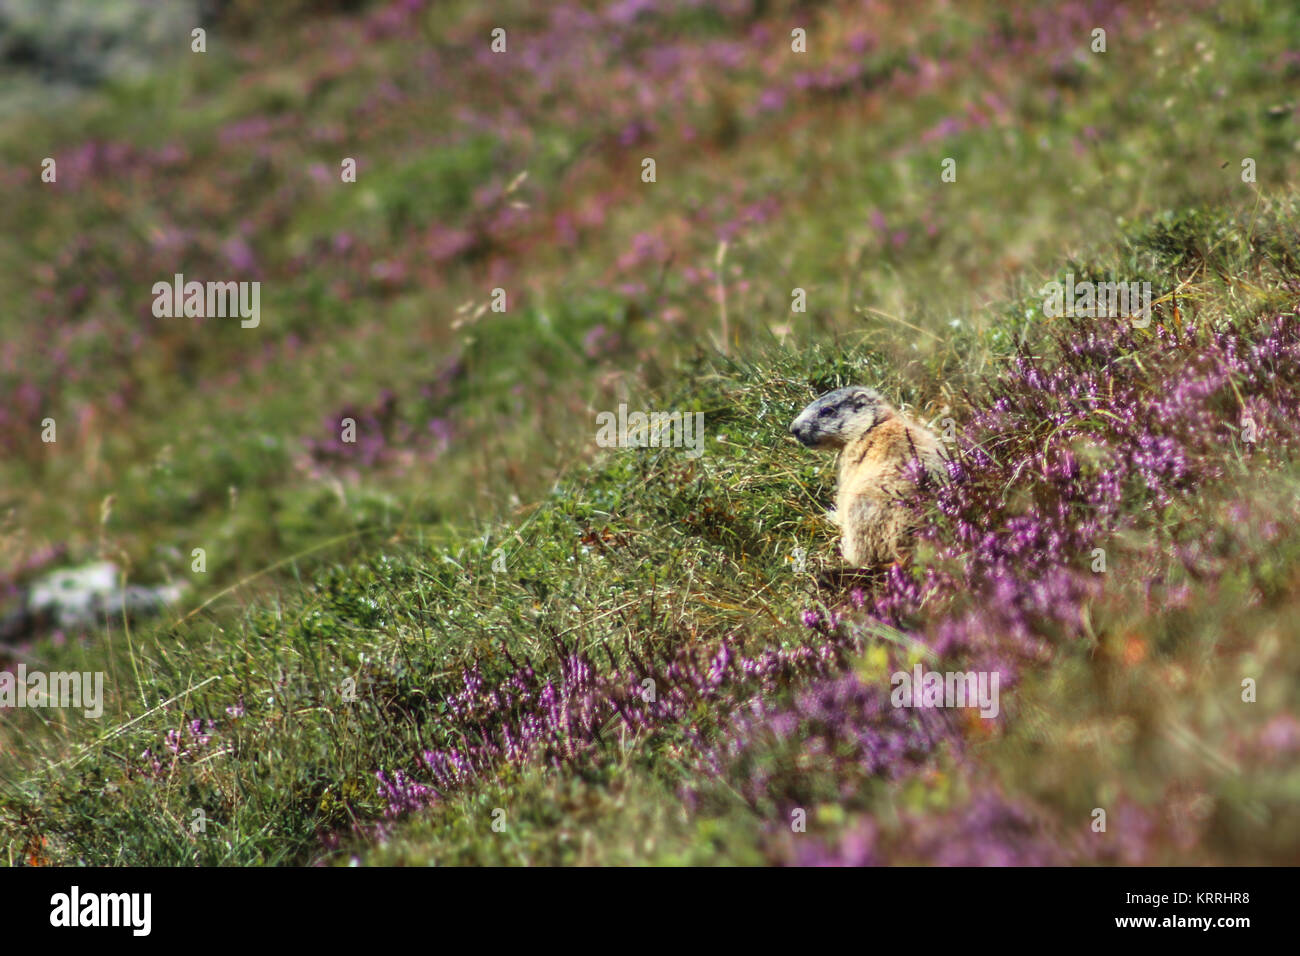 baby groundhog (mormot) sitting in the gras in the alps (europe) - Stock Image